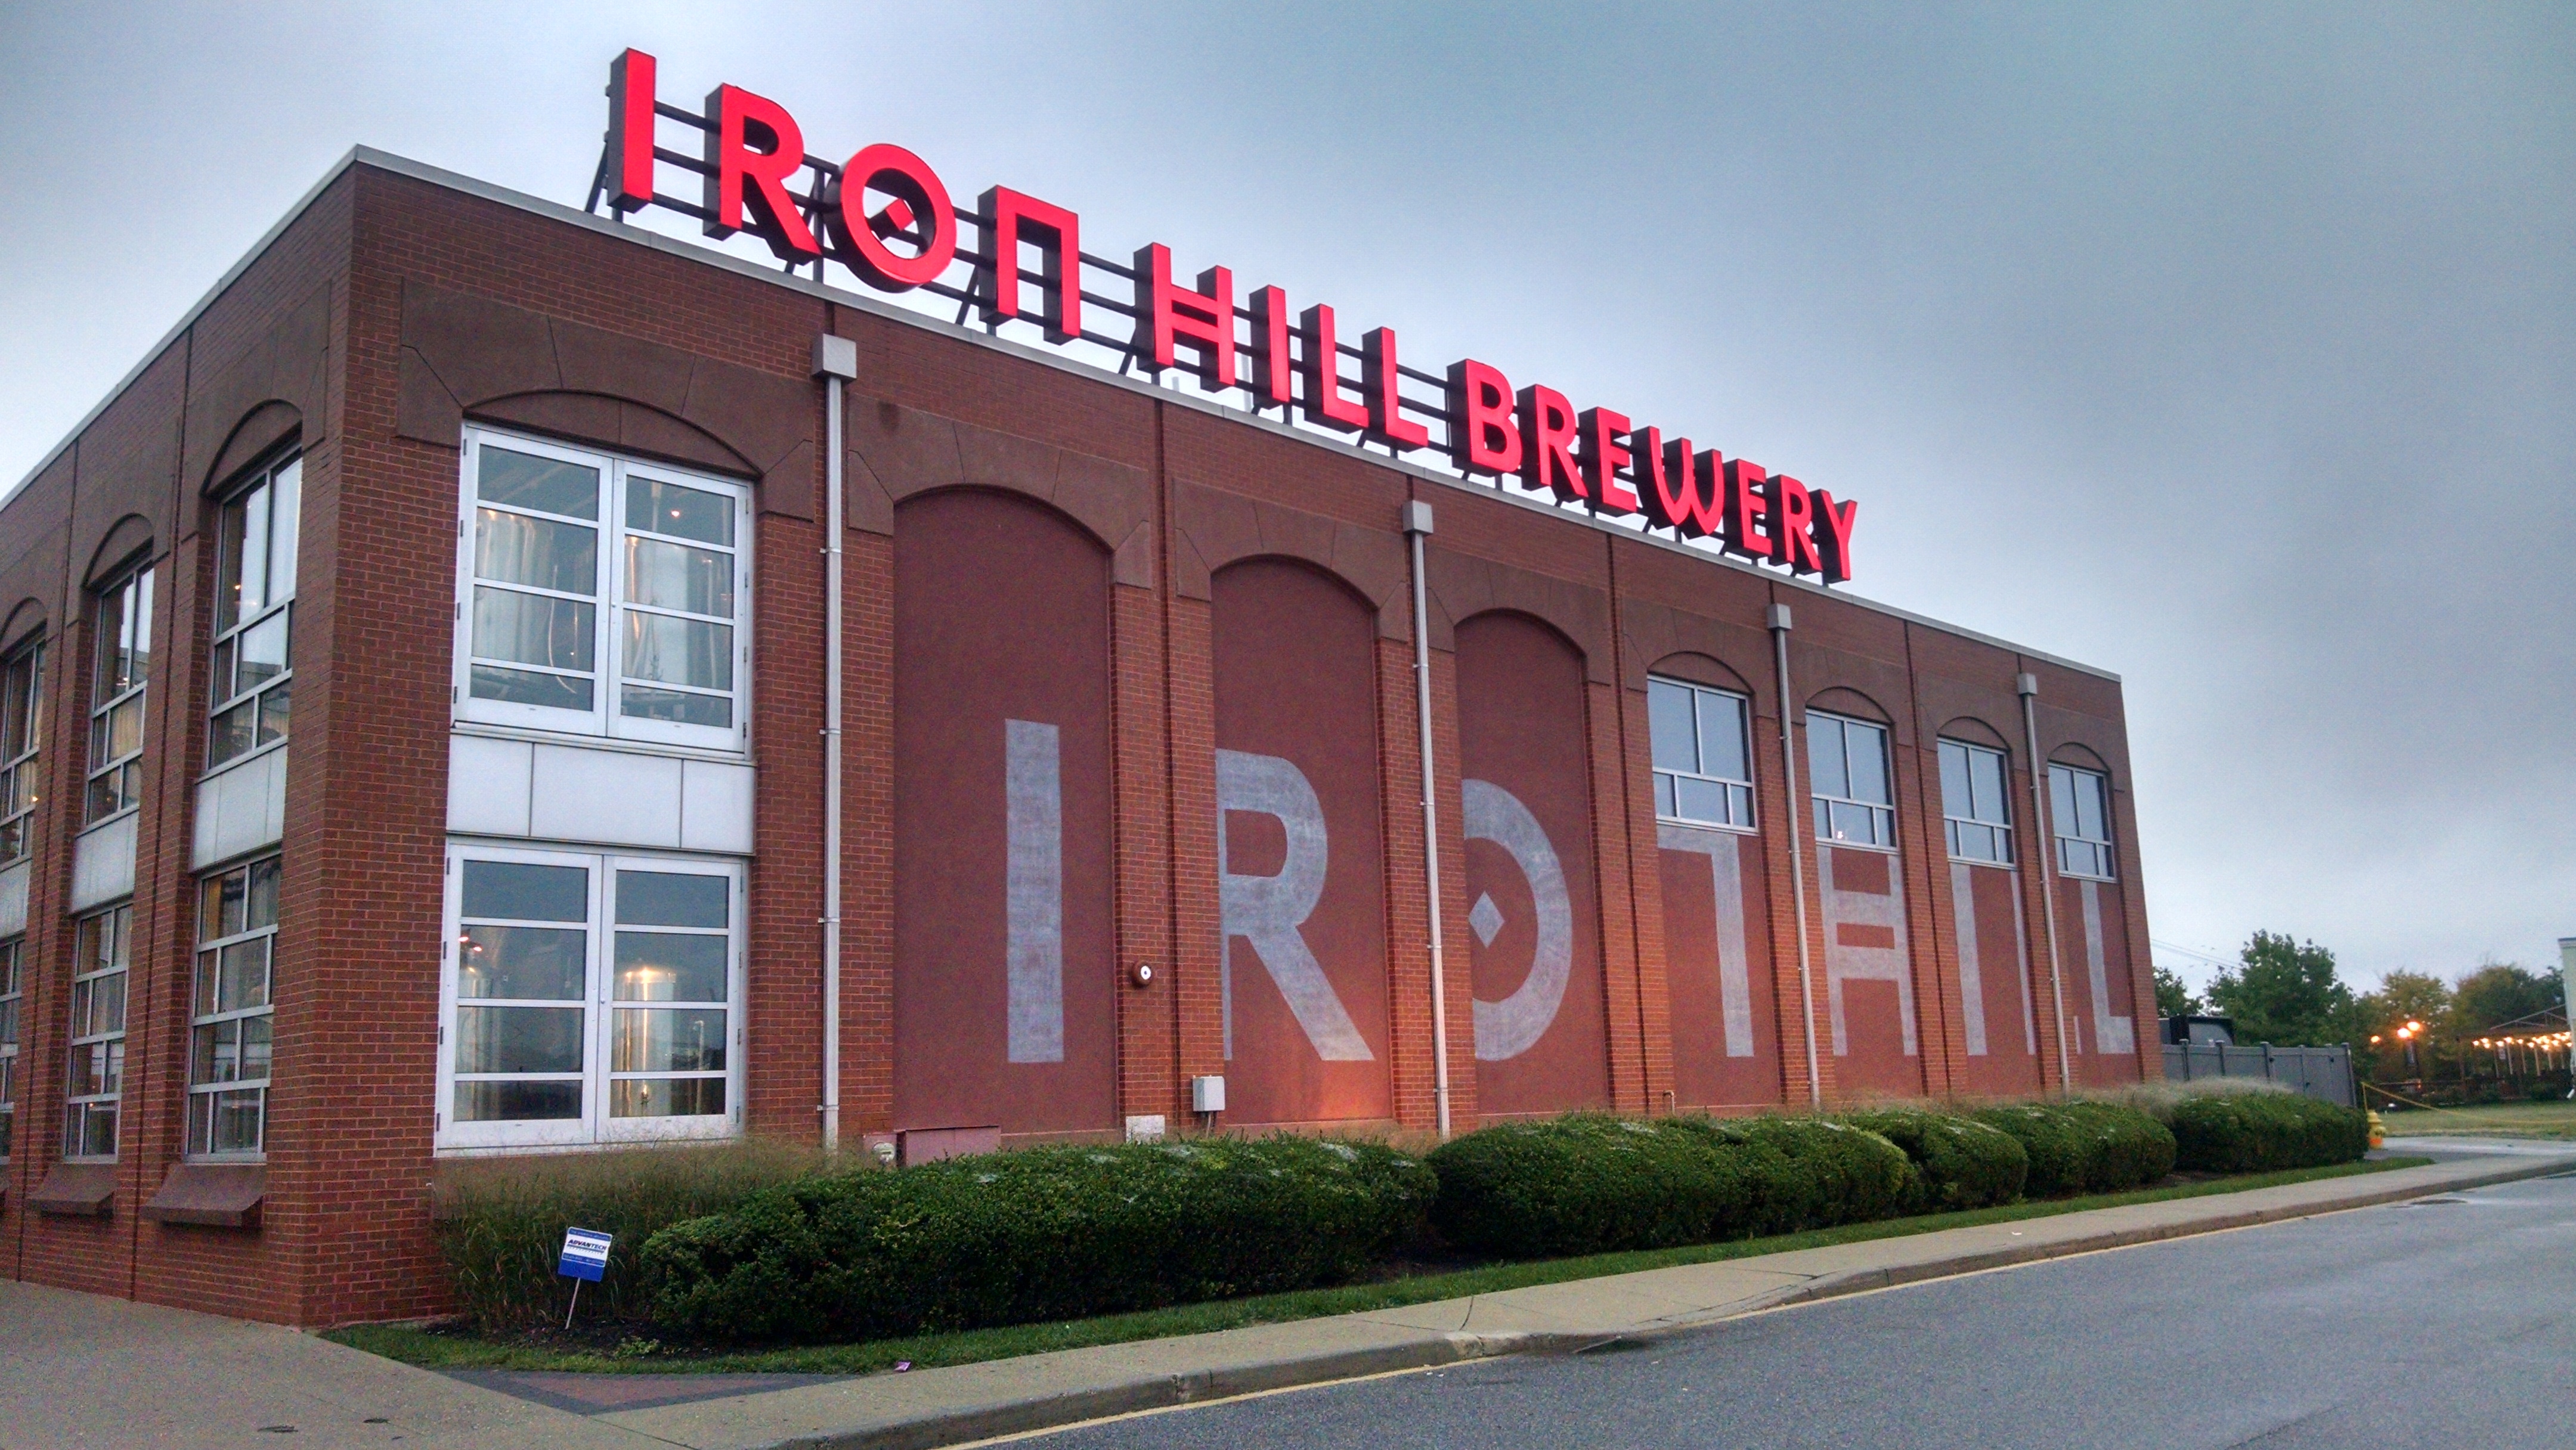 Iron Hill Brewery Restaurant North Wales Pa